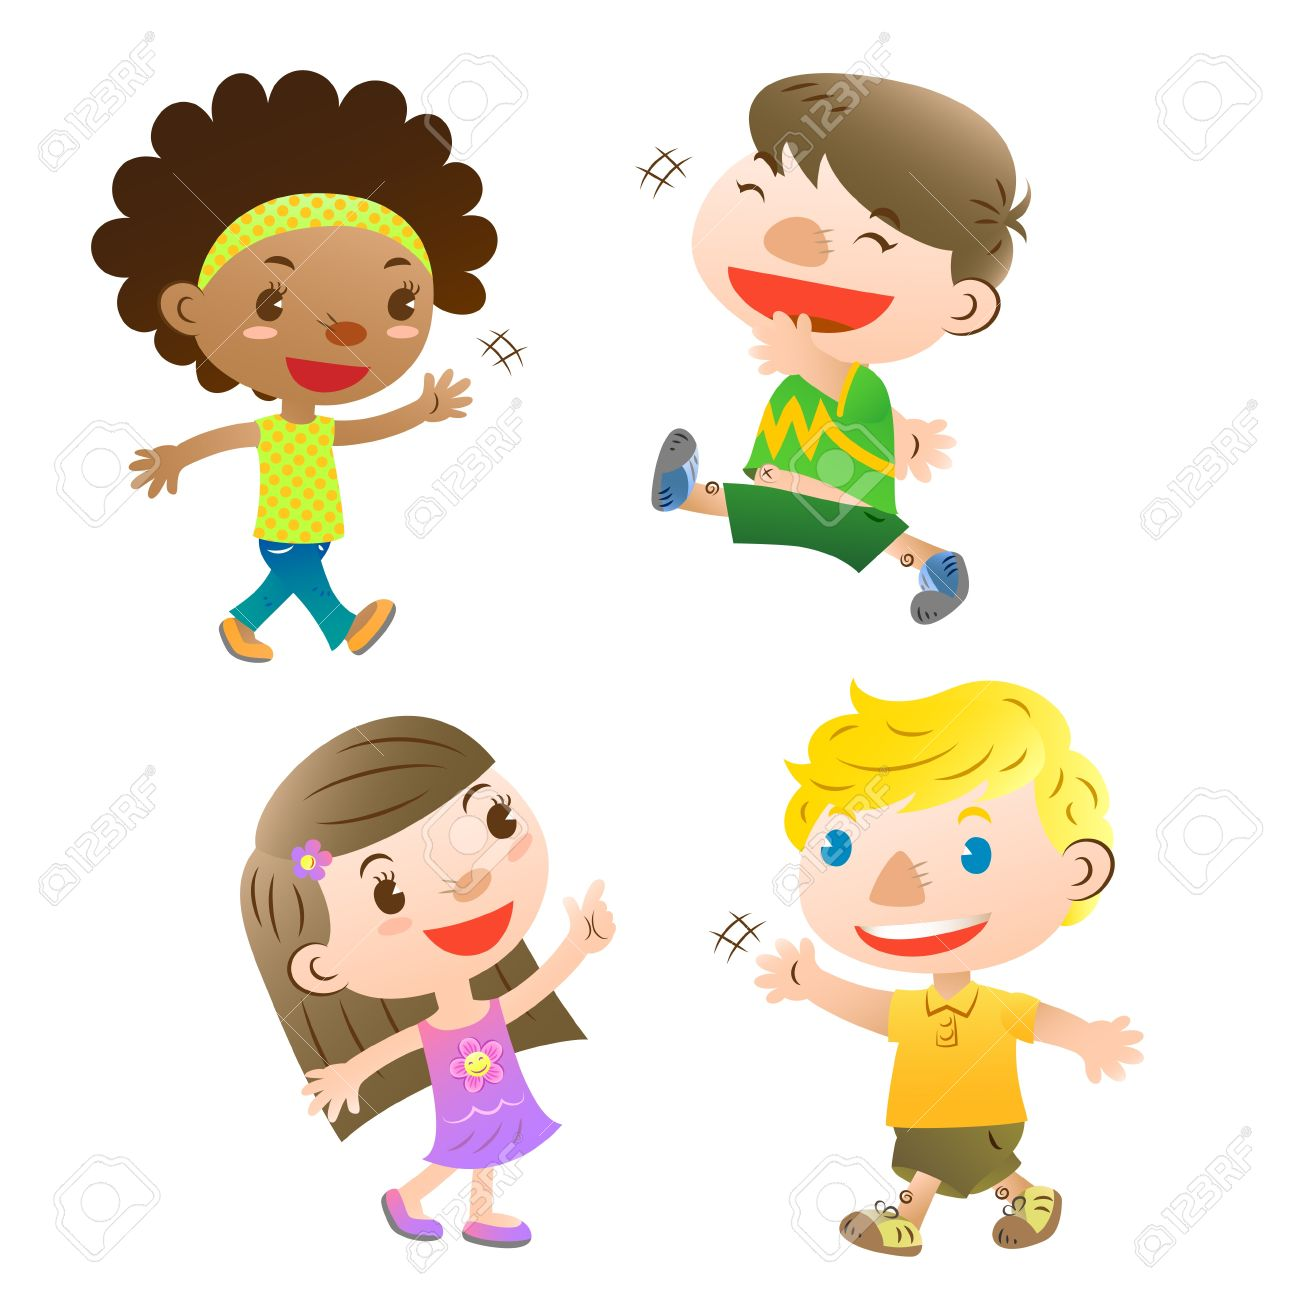 Cute kids pointingwalking and greeting royalty free cliparts cute kids pointingwalking and greeting stock vector 16054987 m4hsunfo